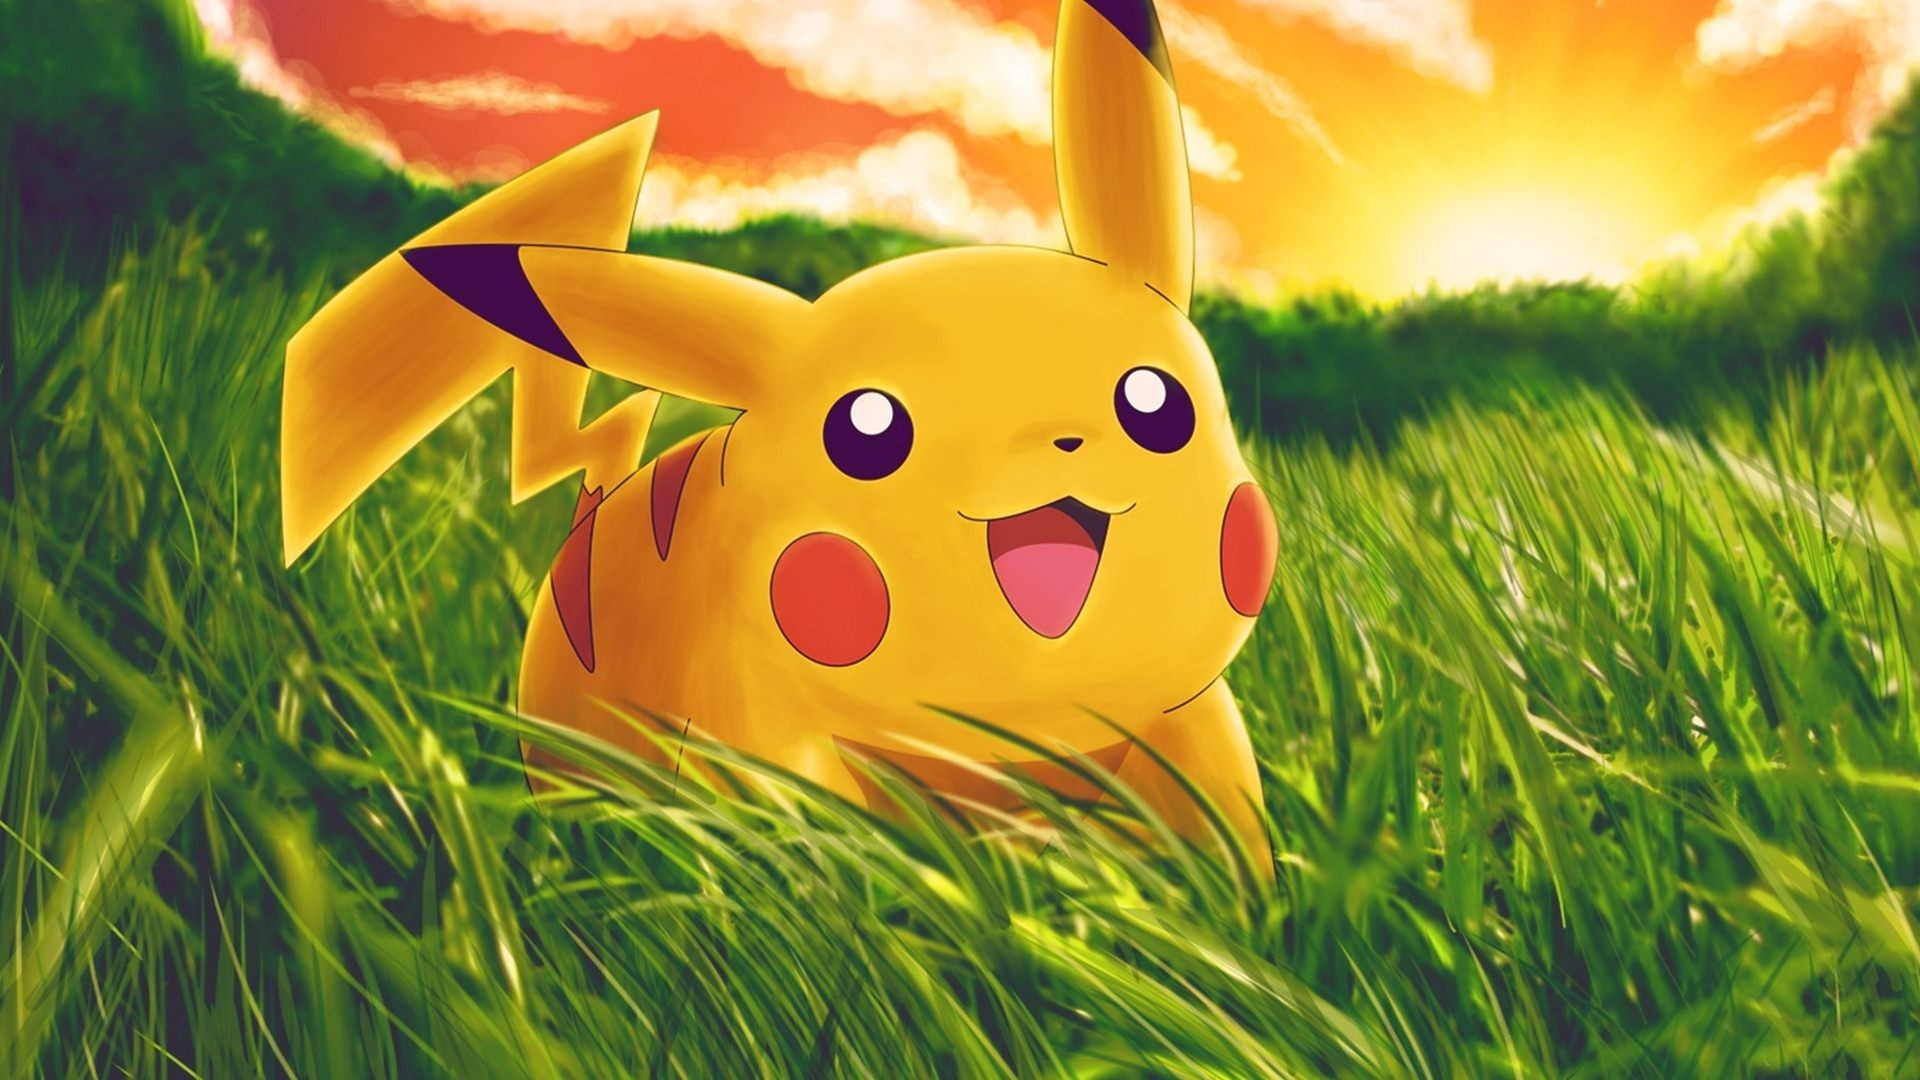 Pikachu Background Wallpapers WIN10 THEMES 1920x1080